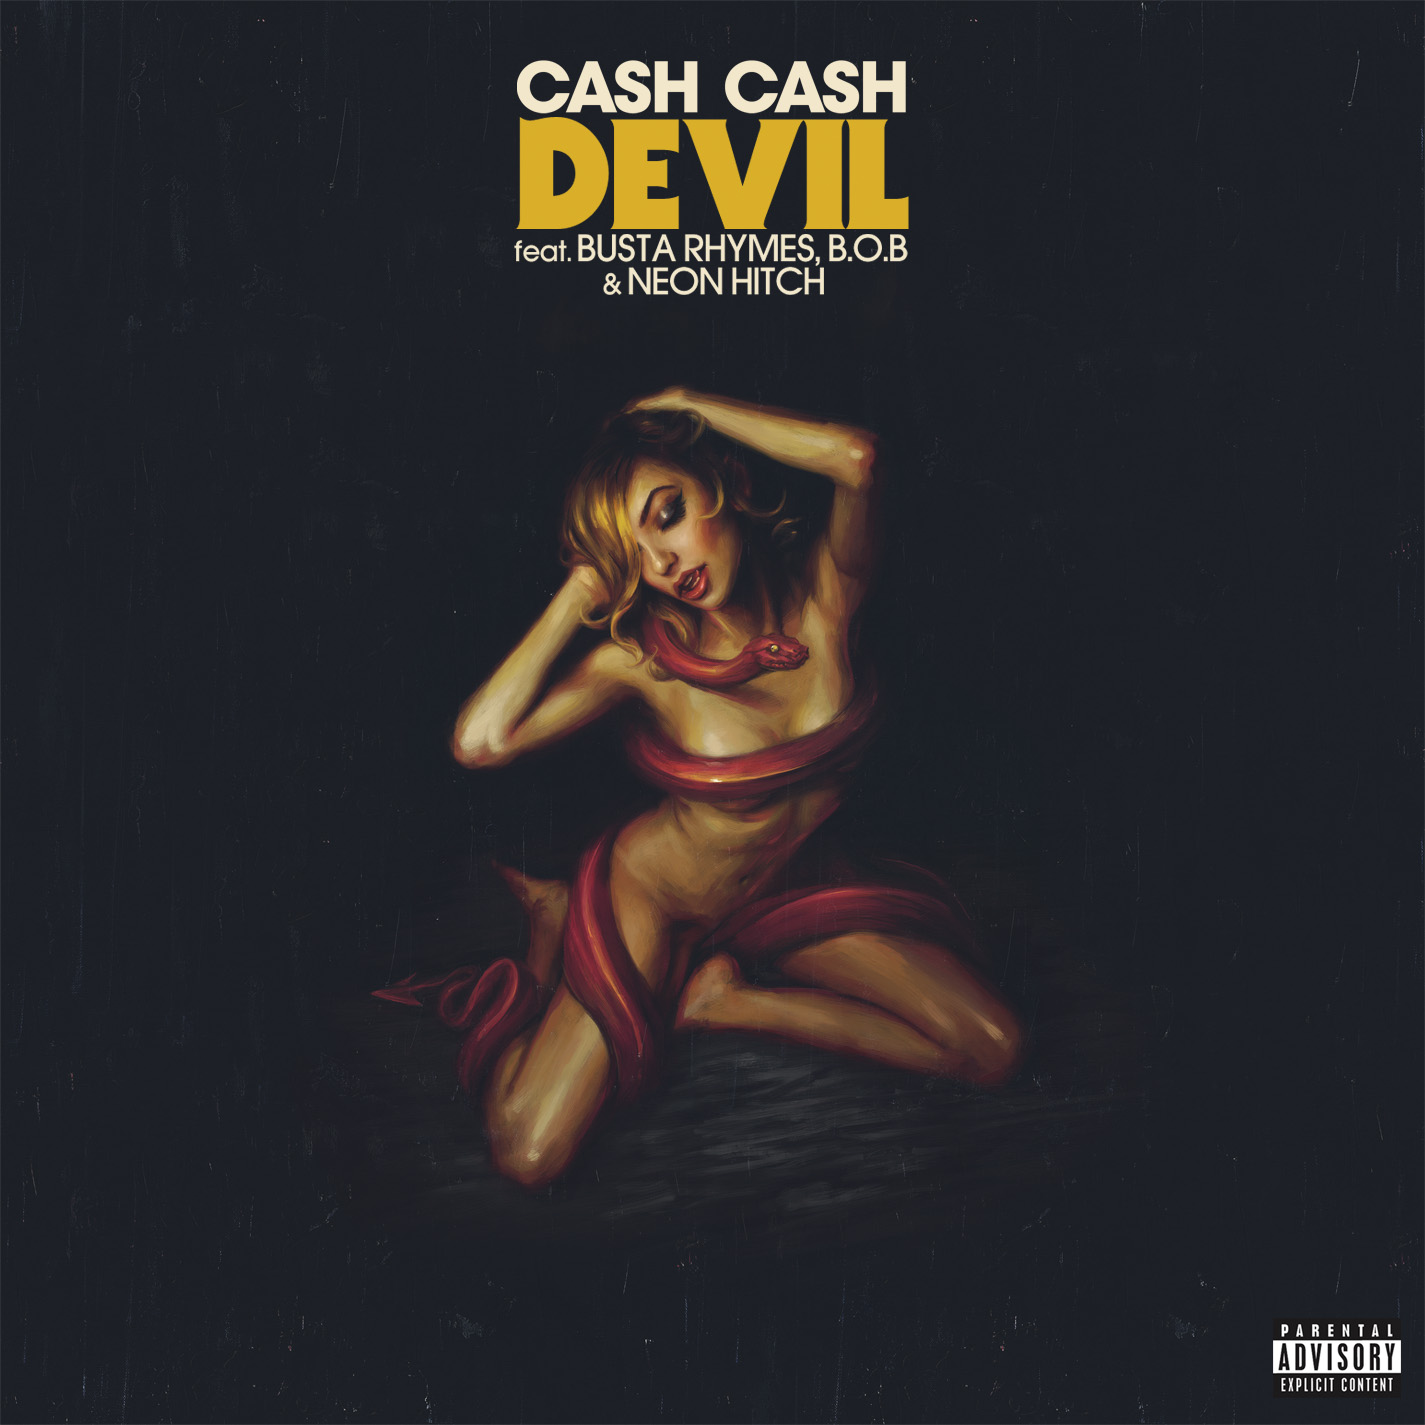 Cash Cash - Devil single art. Illustration by Sam Spratt